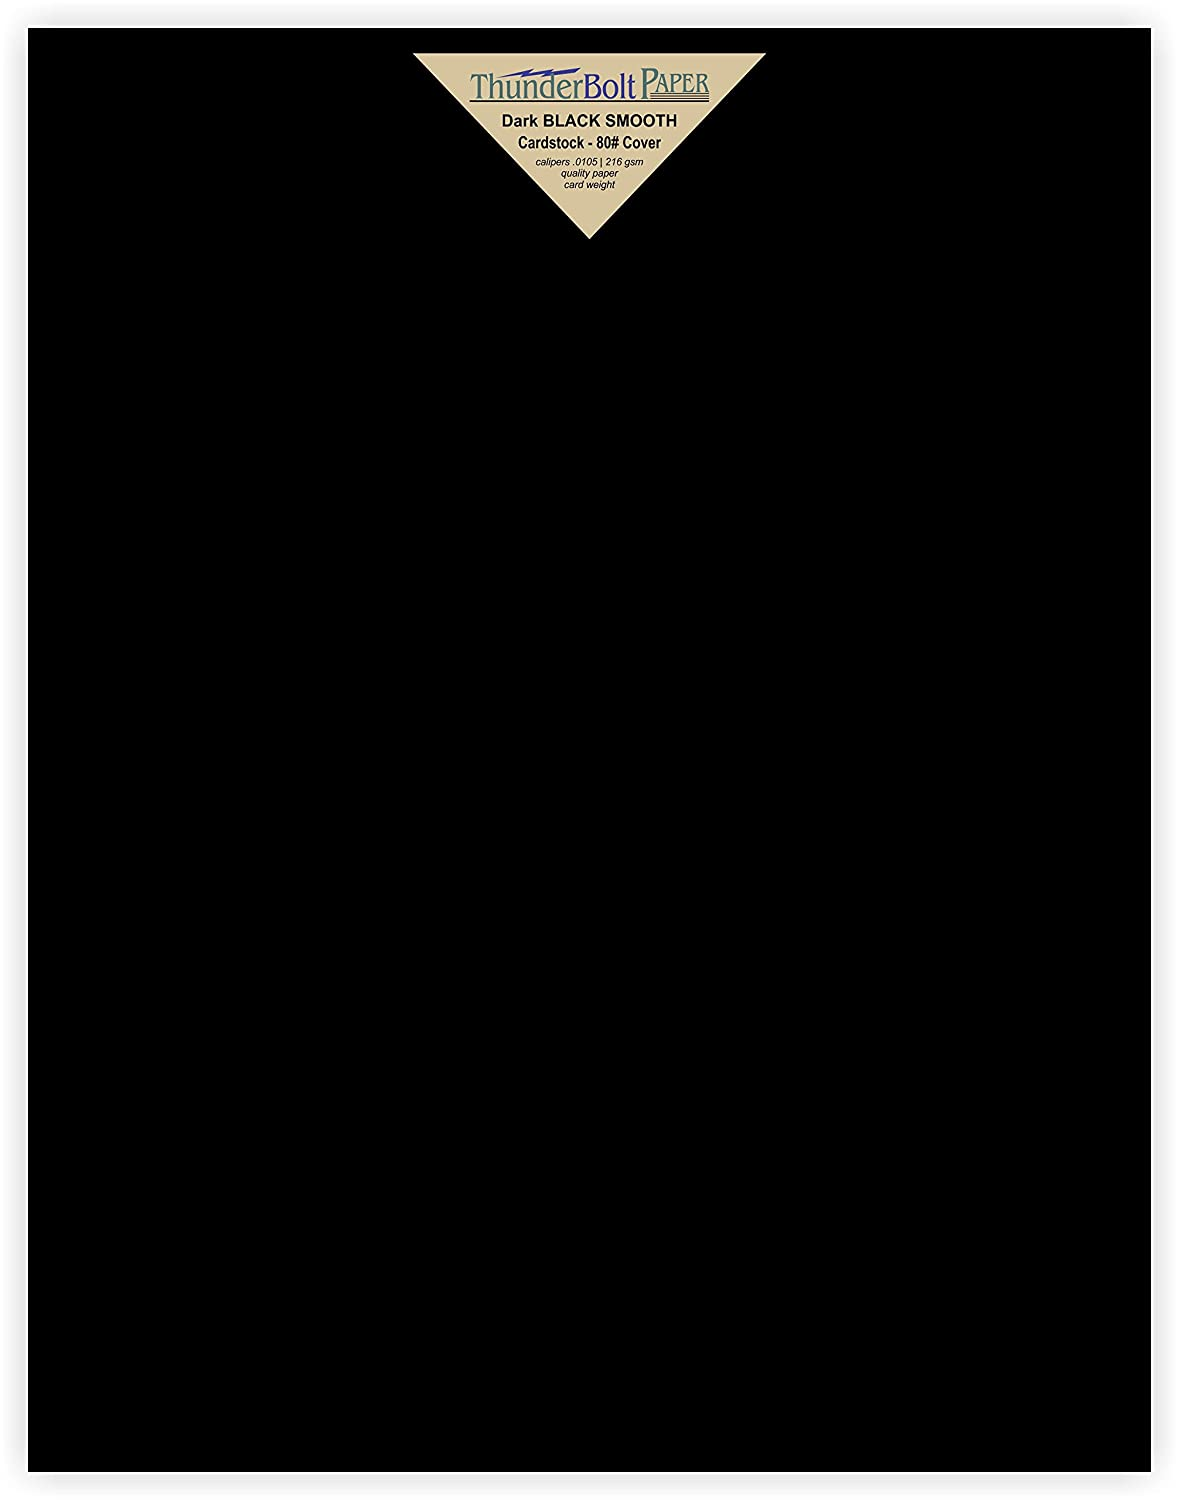 15 Dark Black Smooth Card/Cover Sheets - 11 X 14 (11X14 Inches) Scrapbook|Picture-Frame Size - 80# (80 lb/pound) - Cover Weight Fine Paper for Quality Results on a Smooth Finish TBP 4336868683